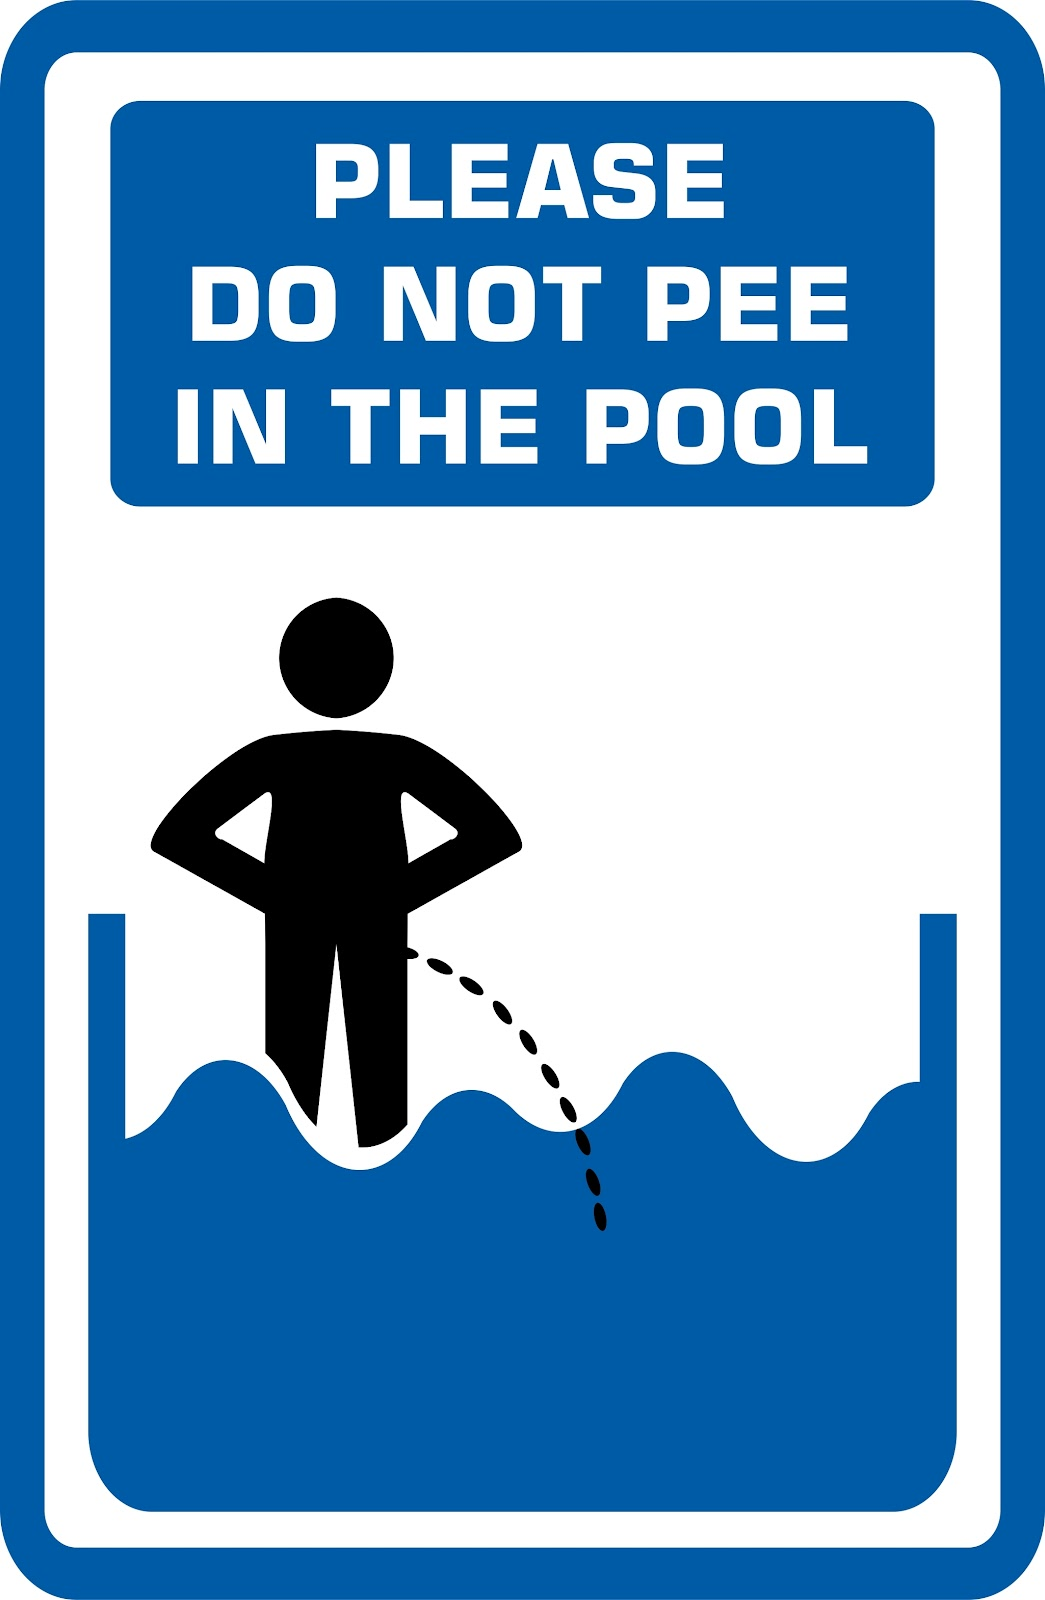 a rectangular sign that says please do not pee in the pool and had an image of a man peeing in a pool